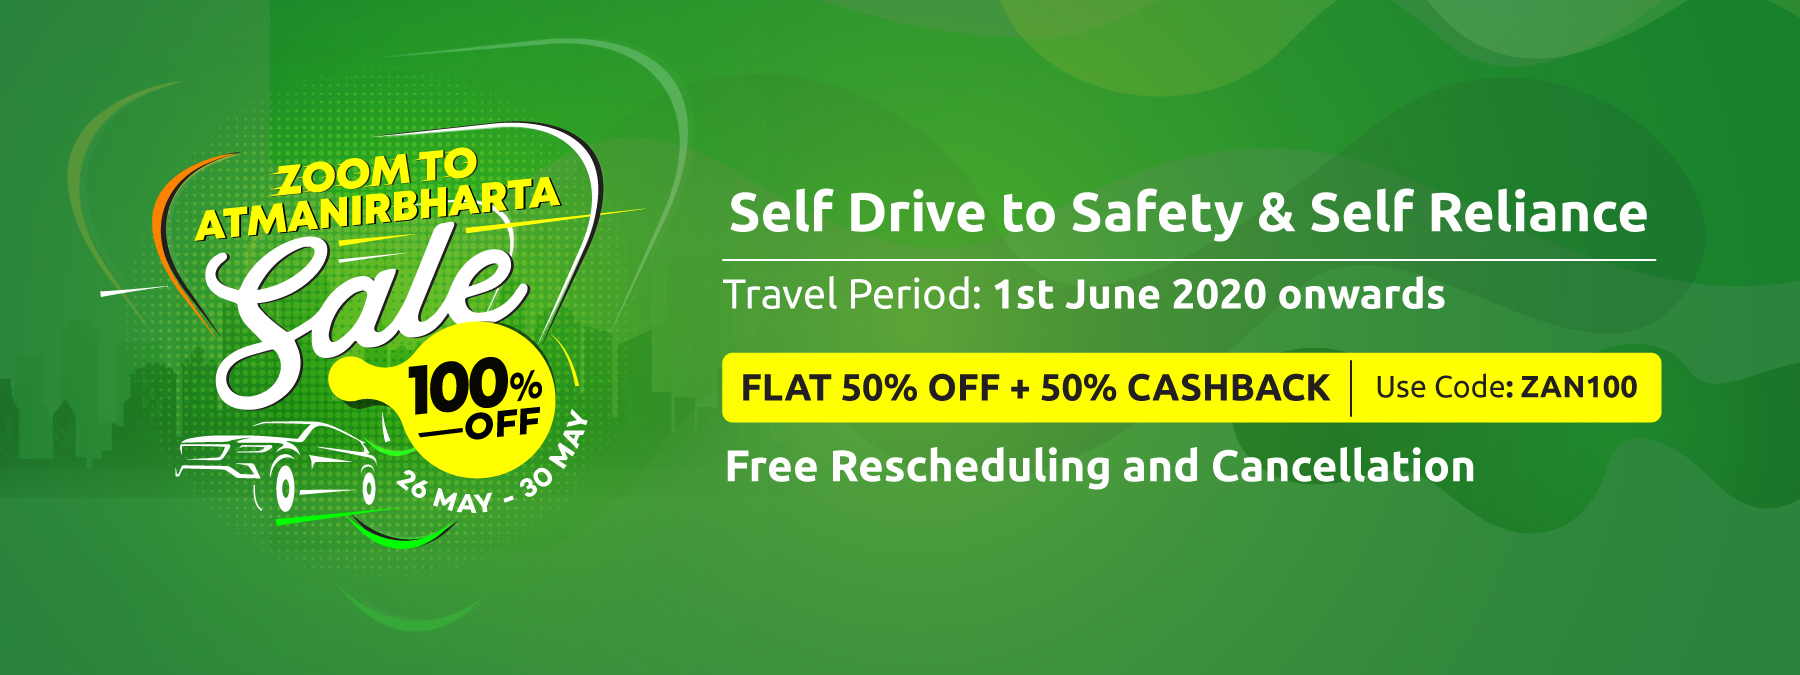 Get Flat 100% OFF* on Zoomcar